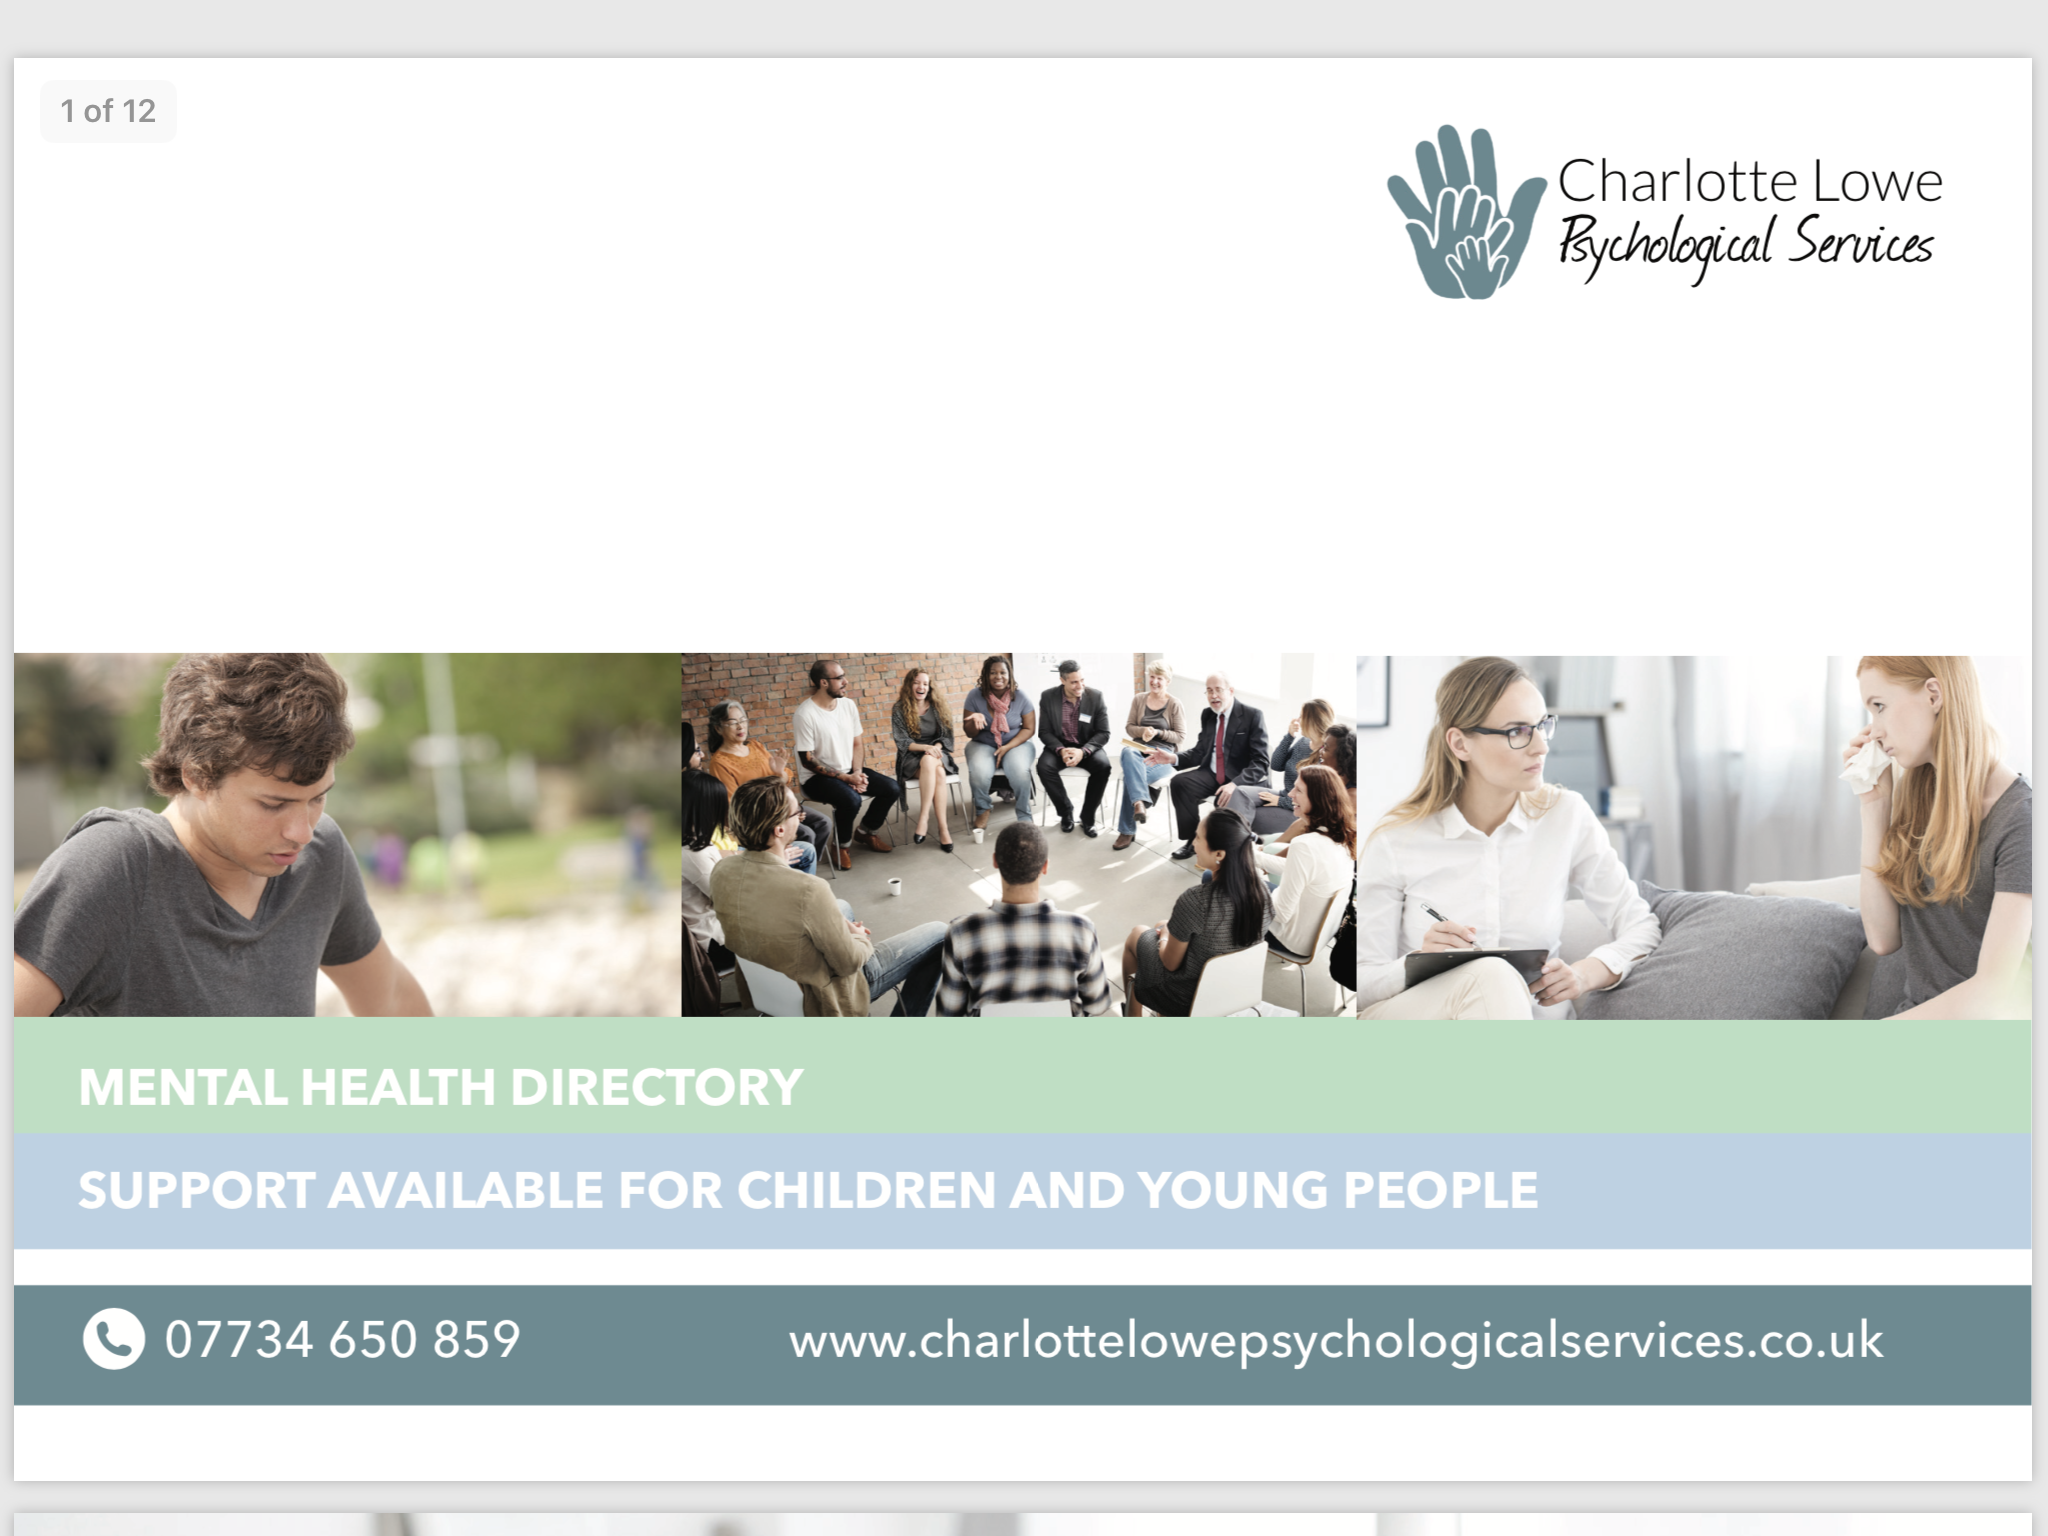 Charlotte Lowe Psychological Services